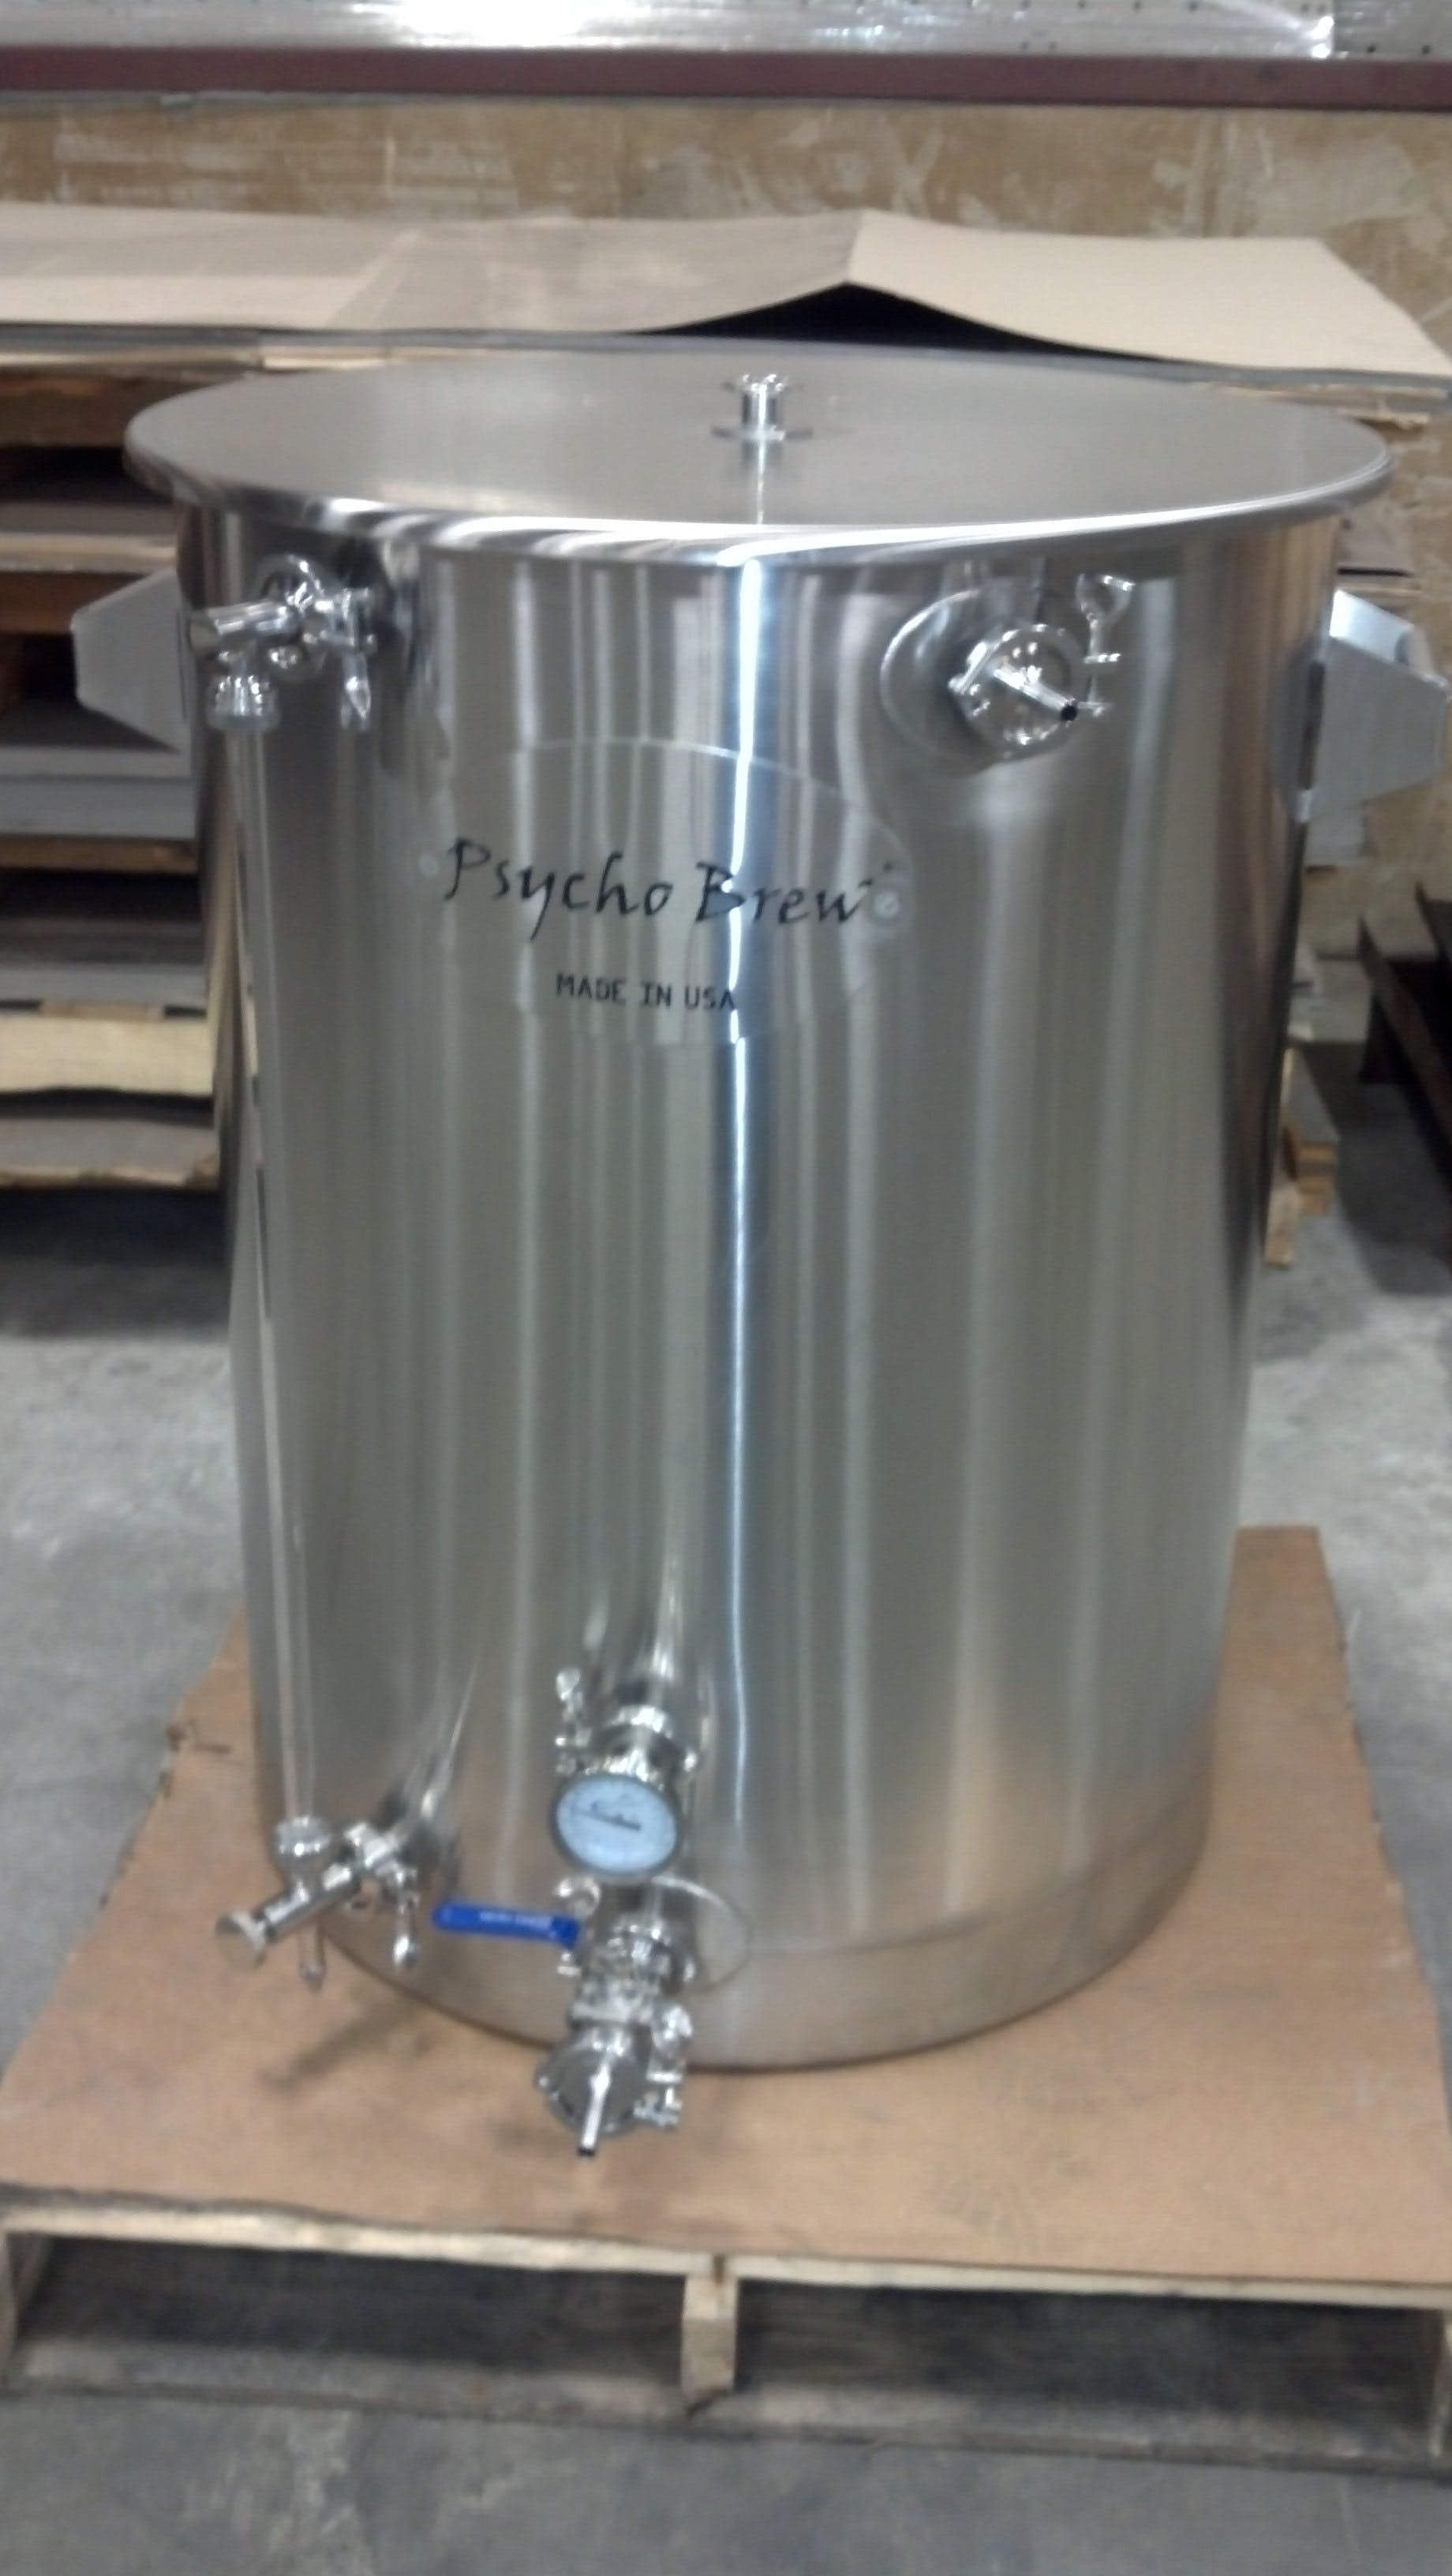 100 gallon kettle Brew pot sold by Psycho Brew